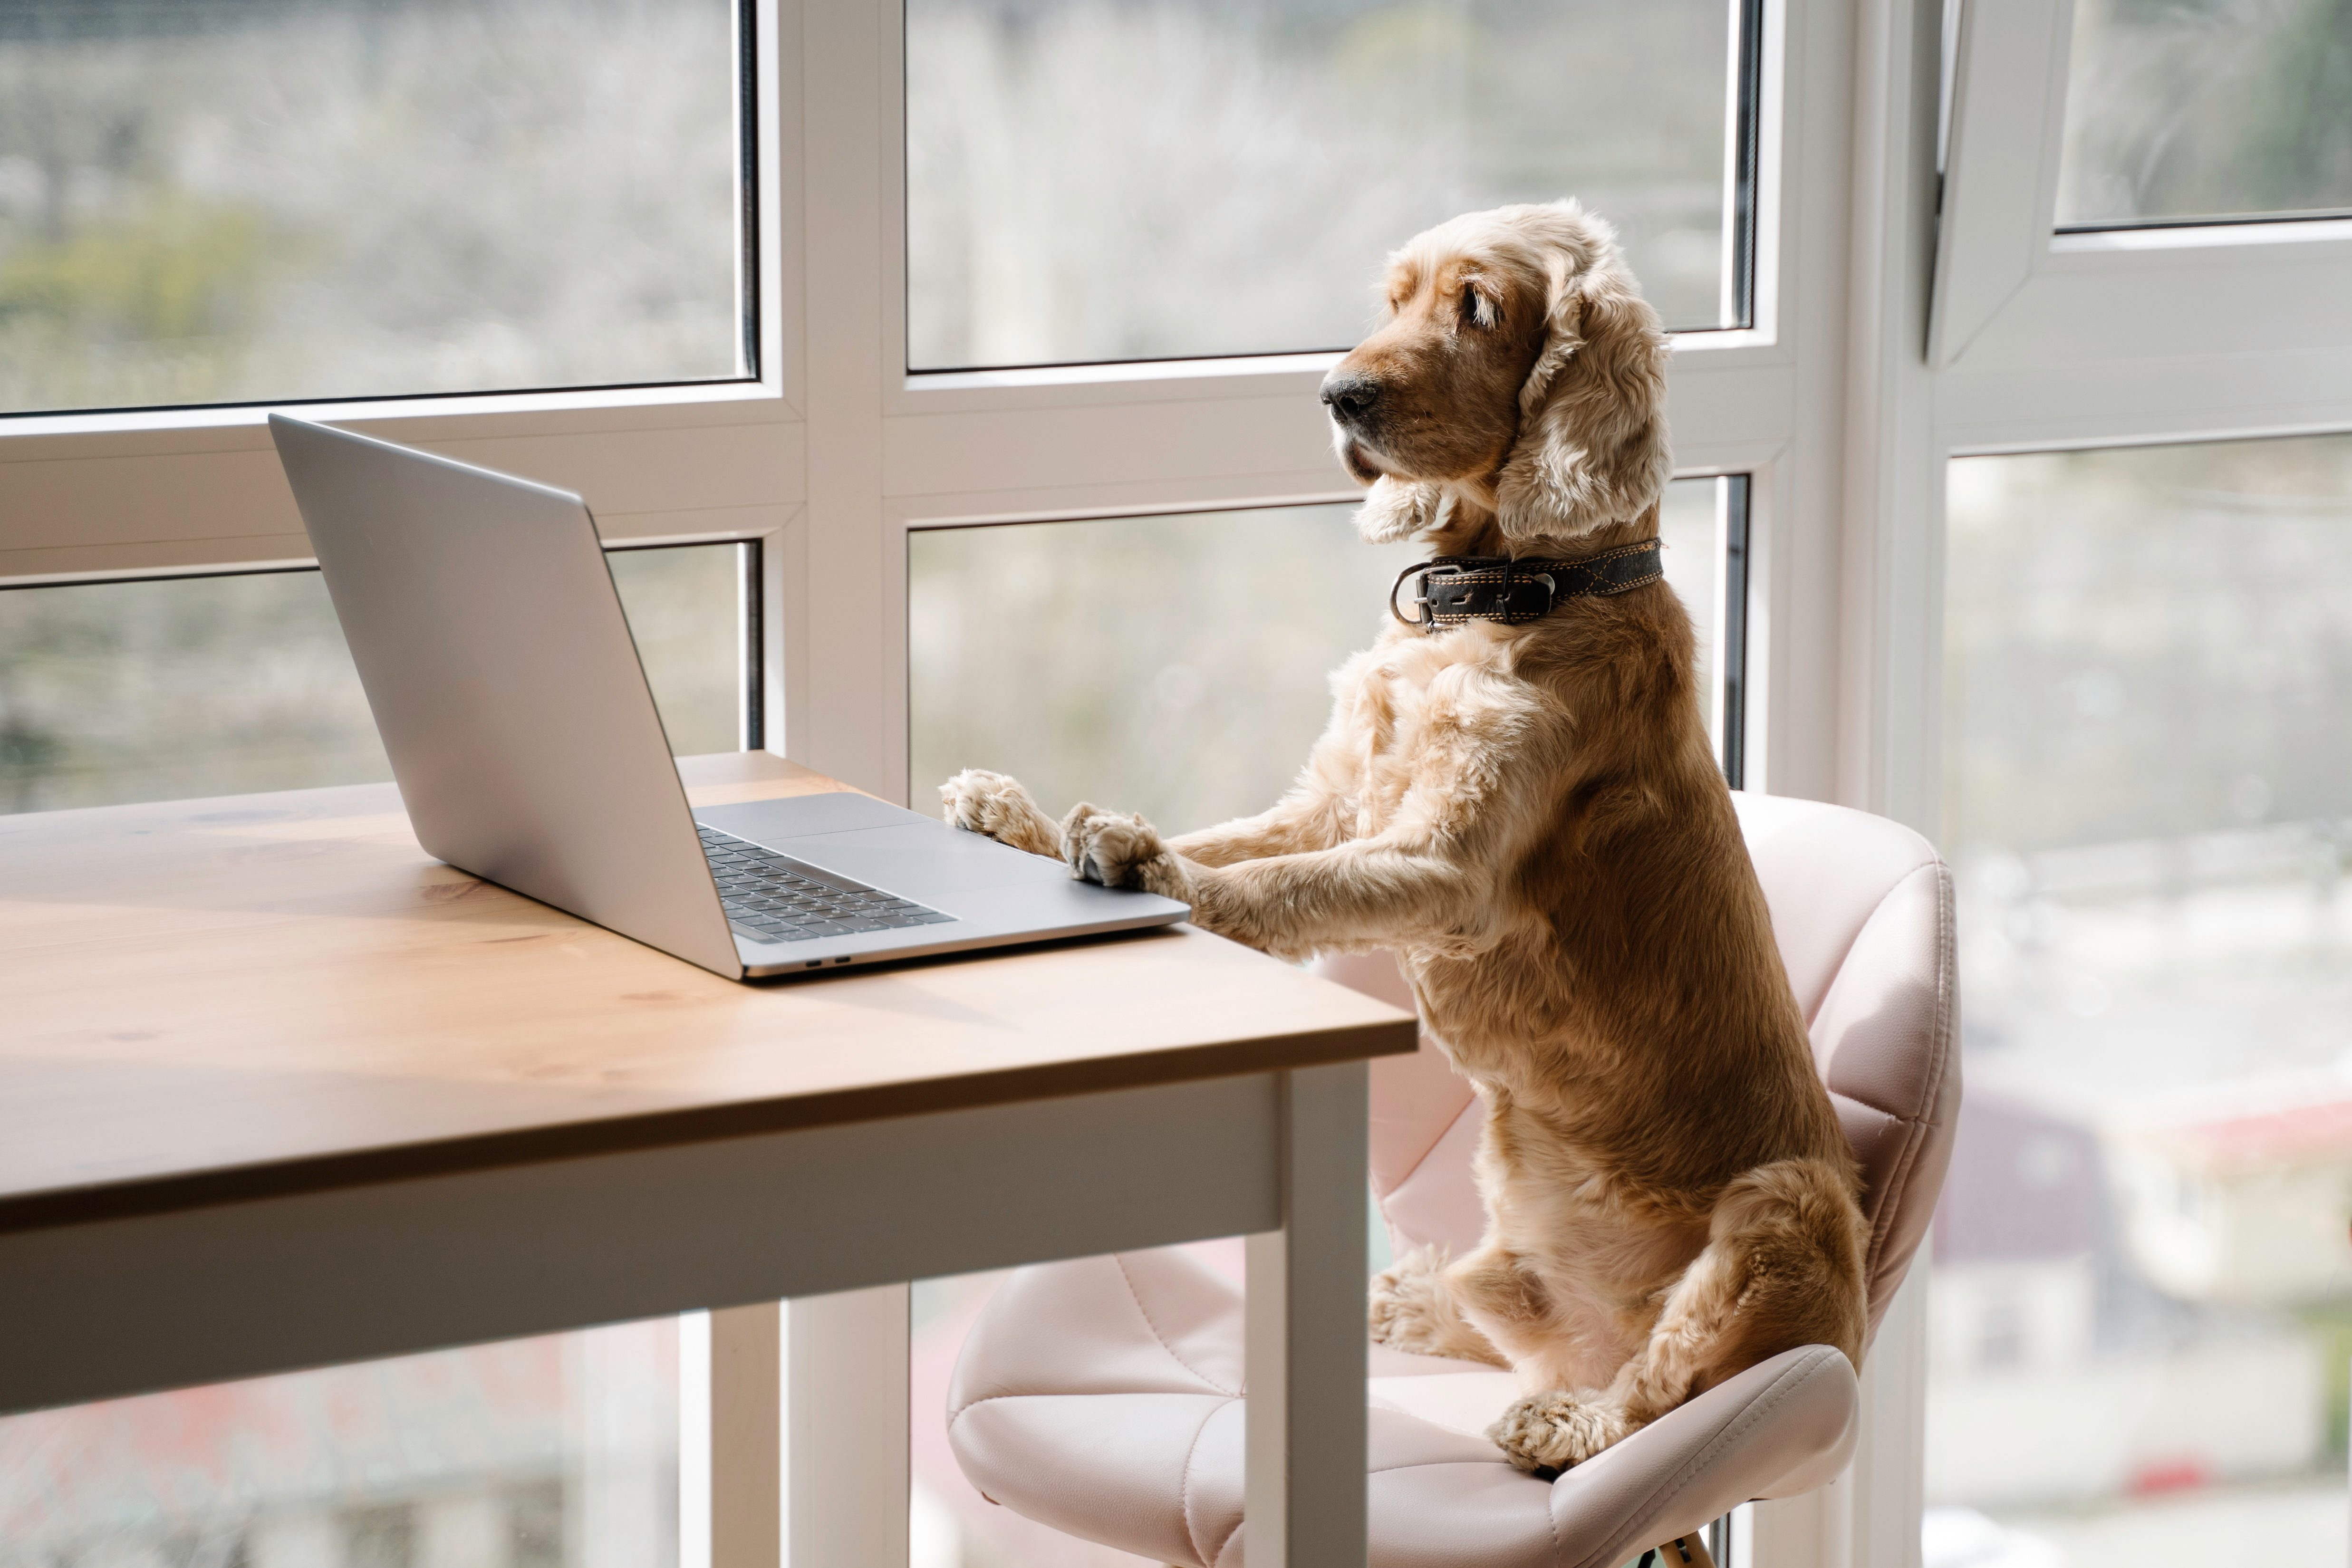 Dog working with laptop